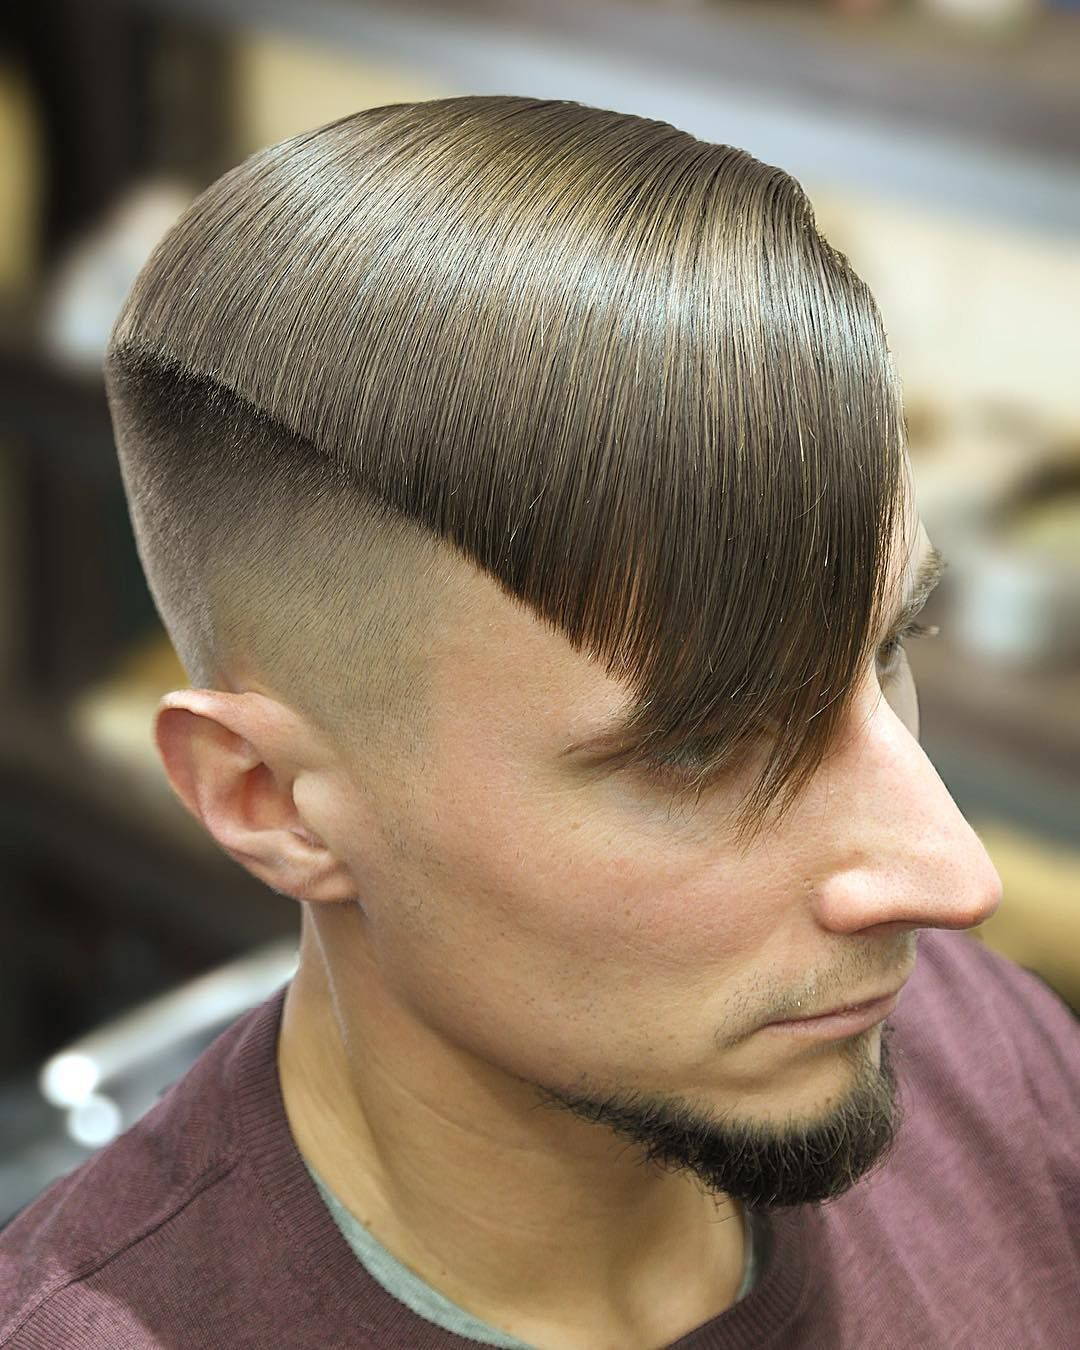 Awesome 60 Awesome Asymmetrical Haircuts For Men Feel The Vibe Check More At Http Machohairstyles Com Best Asymmetrical Haircuts Watervallen